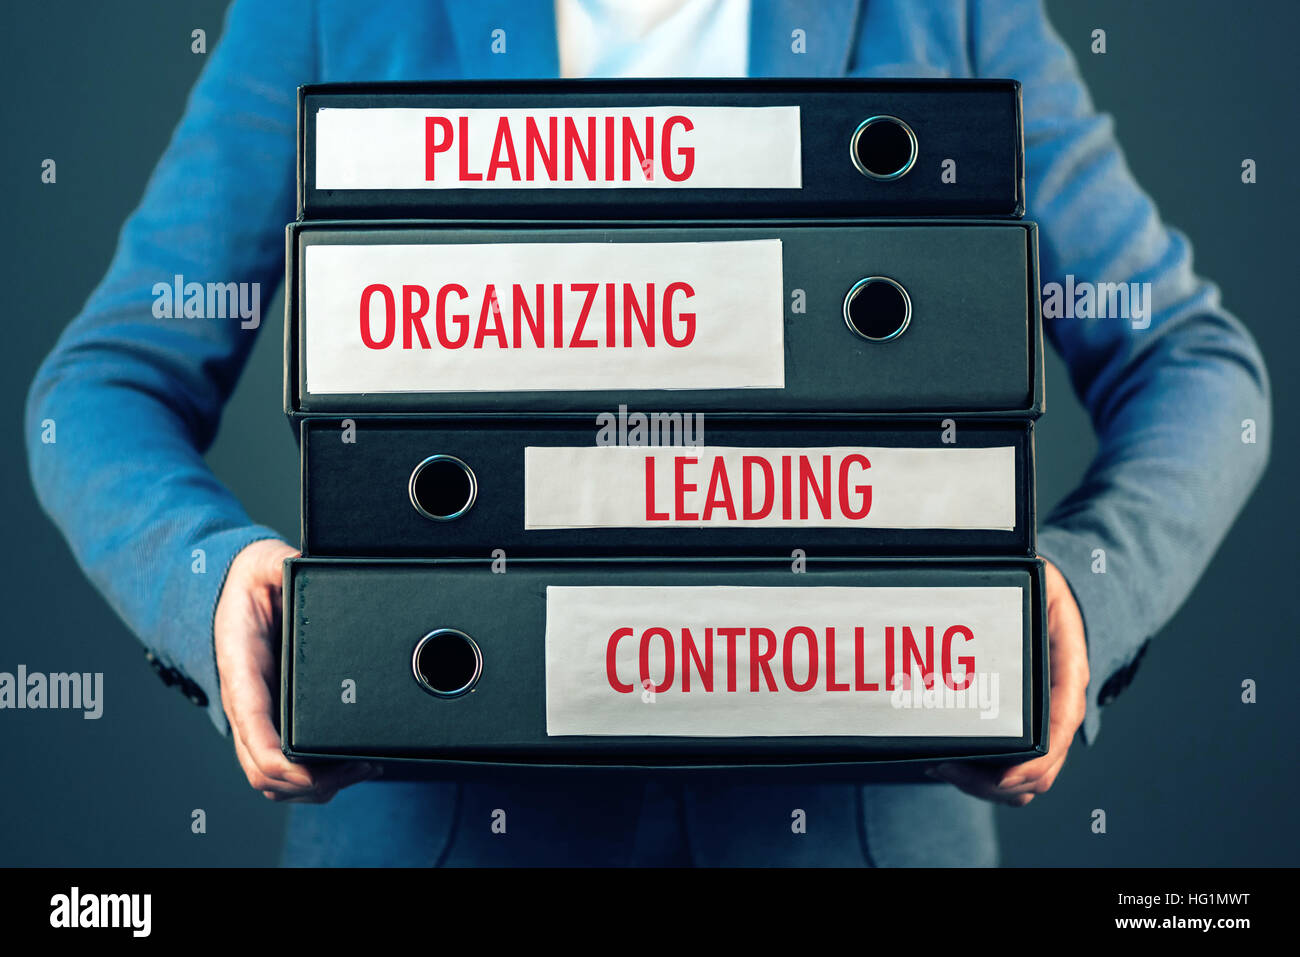 Four basic functions of management process in business organization - planning, organizing, leading and controlling. - Stock Image